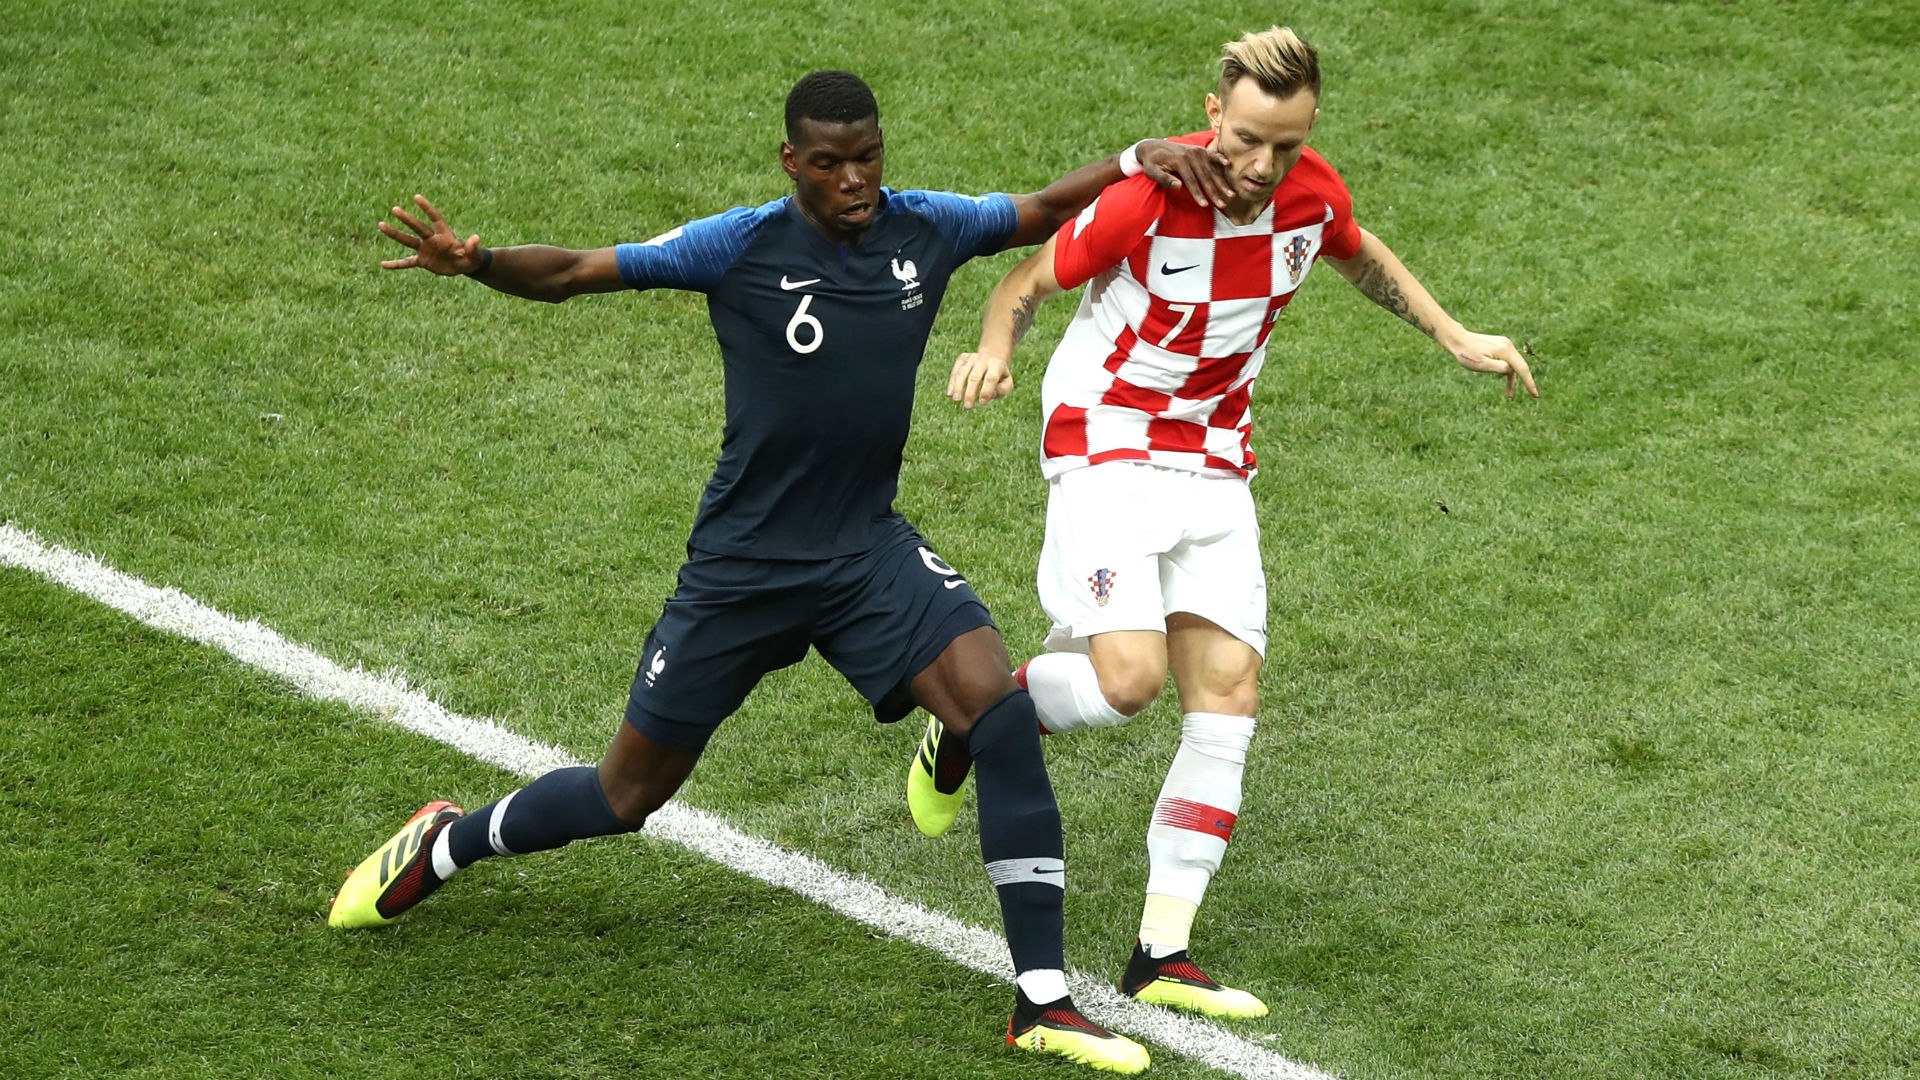 Paul Pogba Ivan Rakitic Croatia France World Cup final 2018